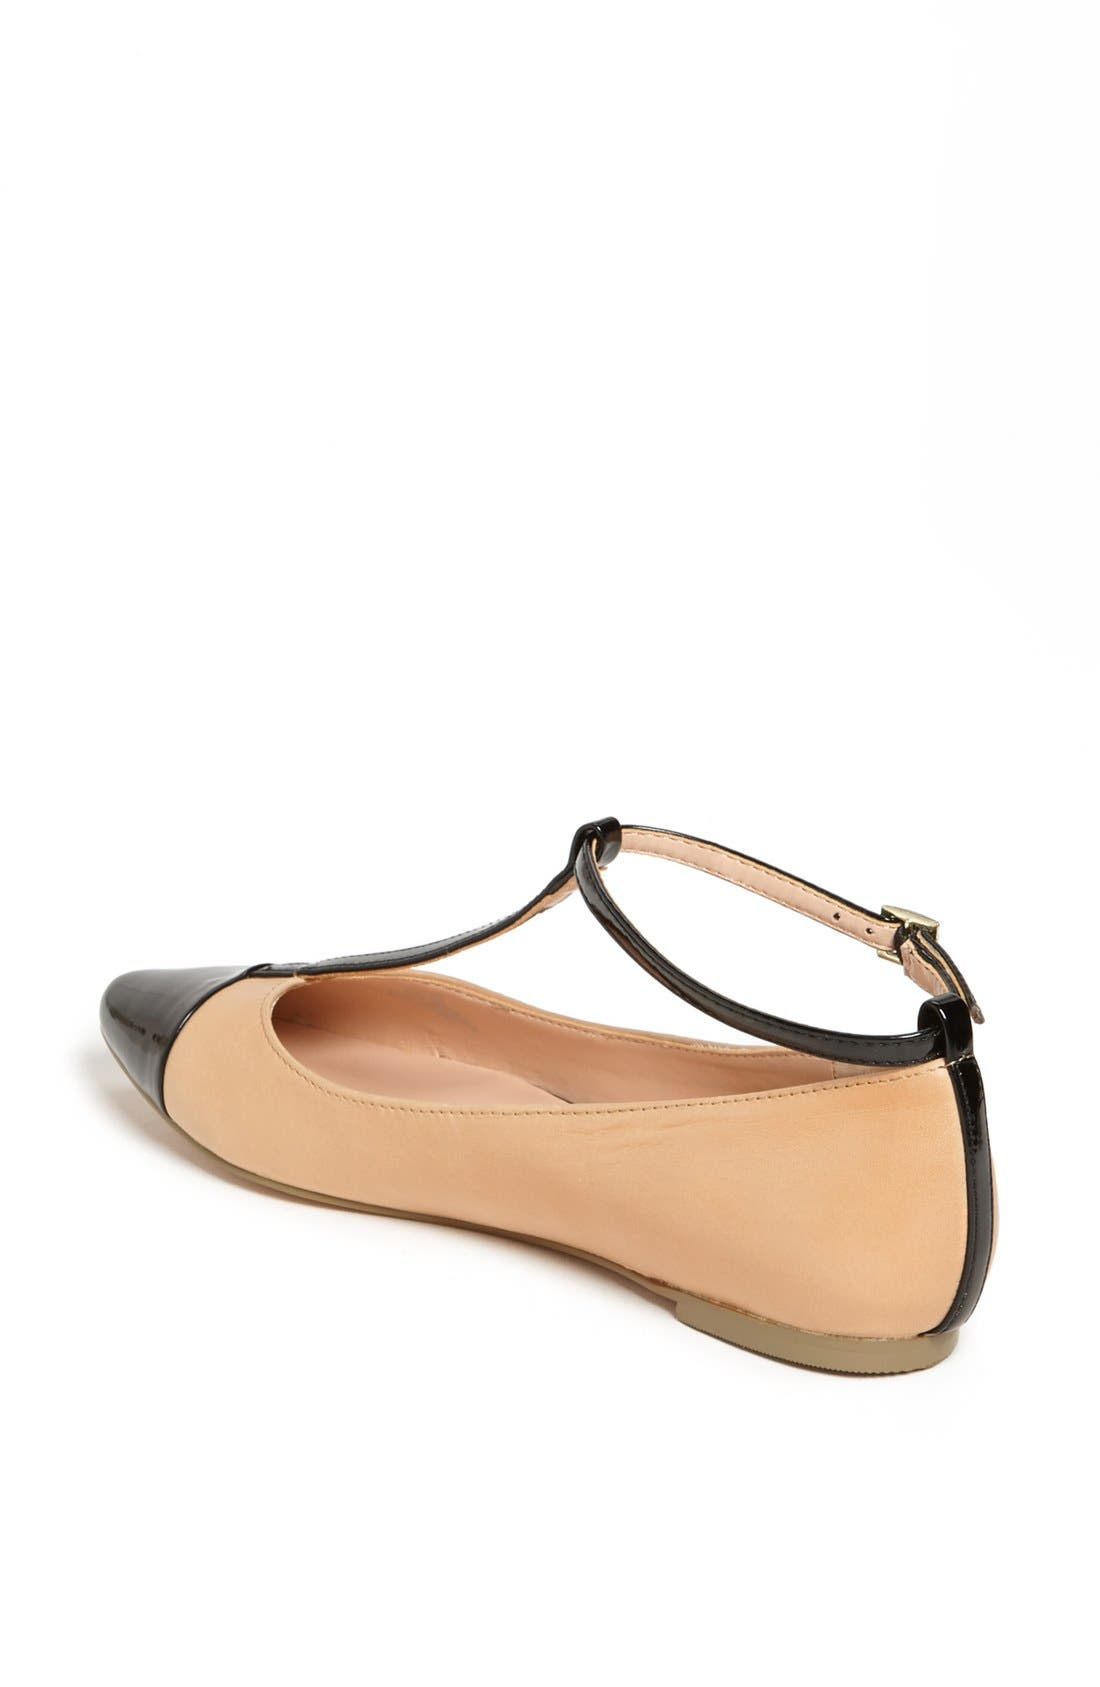 ,                             Julianne Hough for Sole Society 'Addy' Flat,                             Alternate thumbnail 24, color,                             251